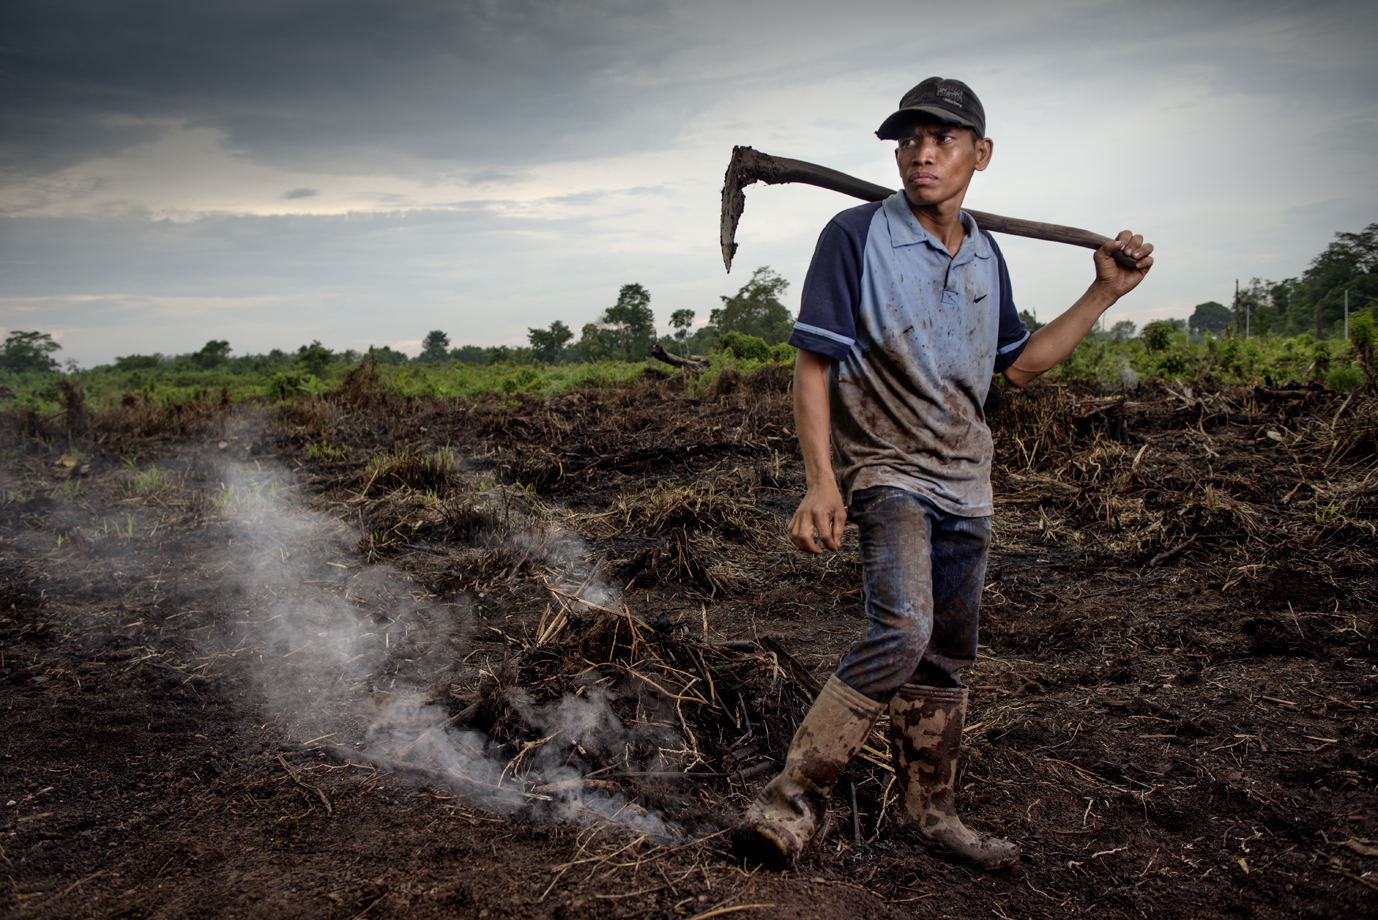 Worker at a palm oil plantation, Sumatra / Indonesia